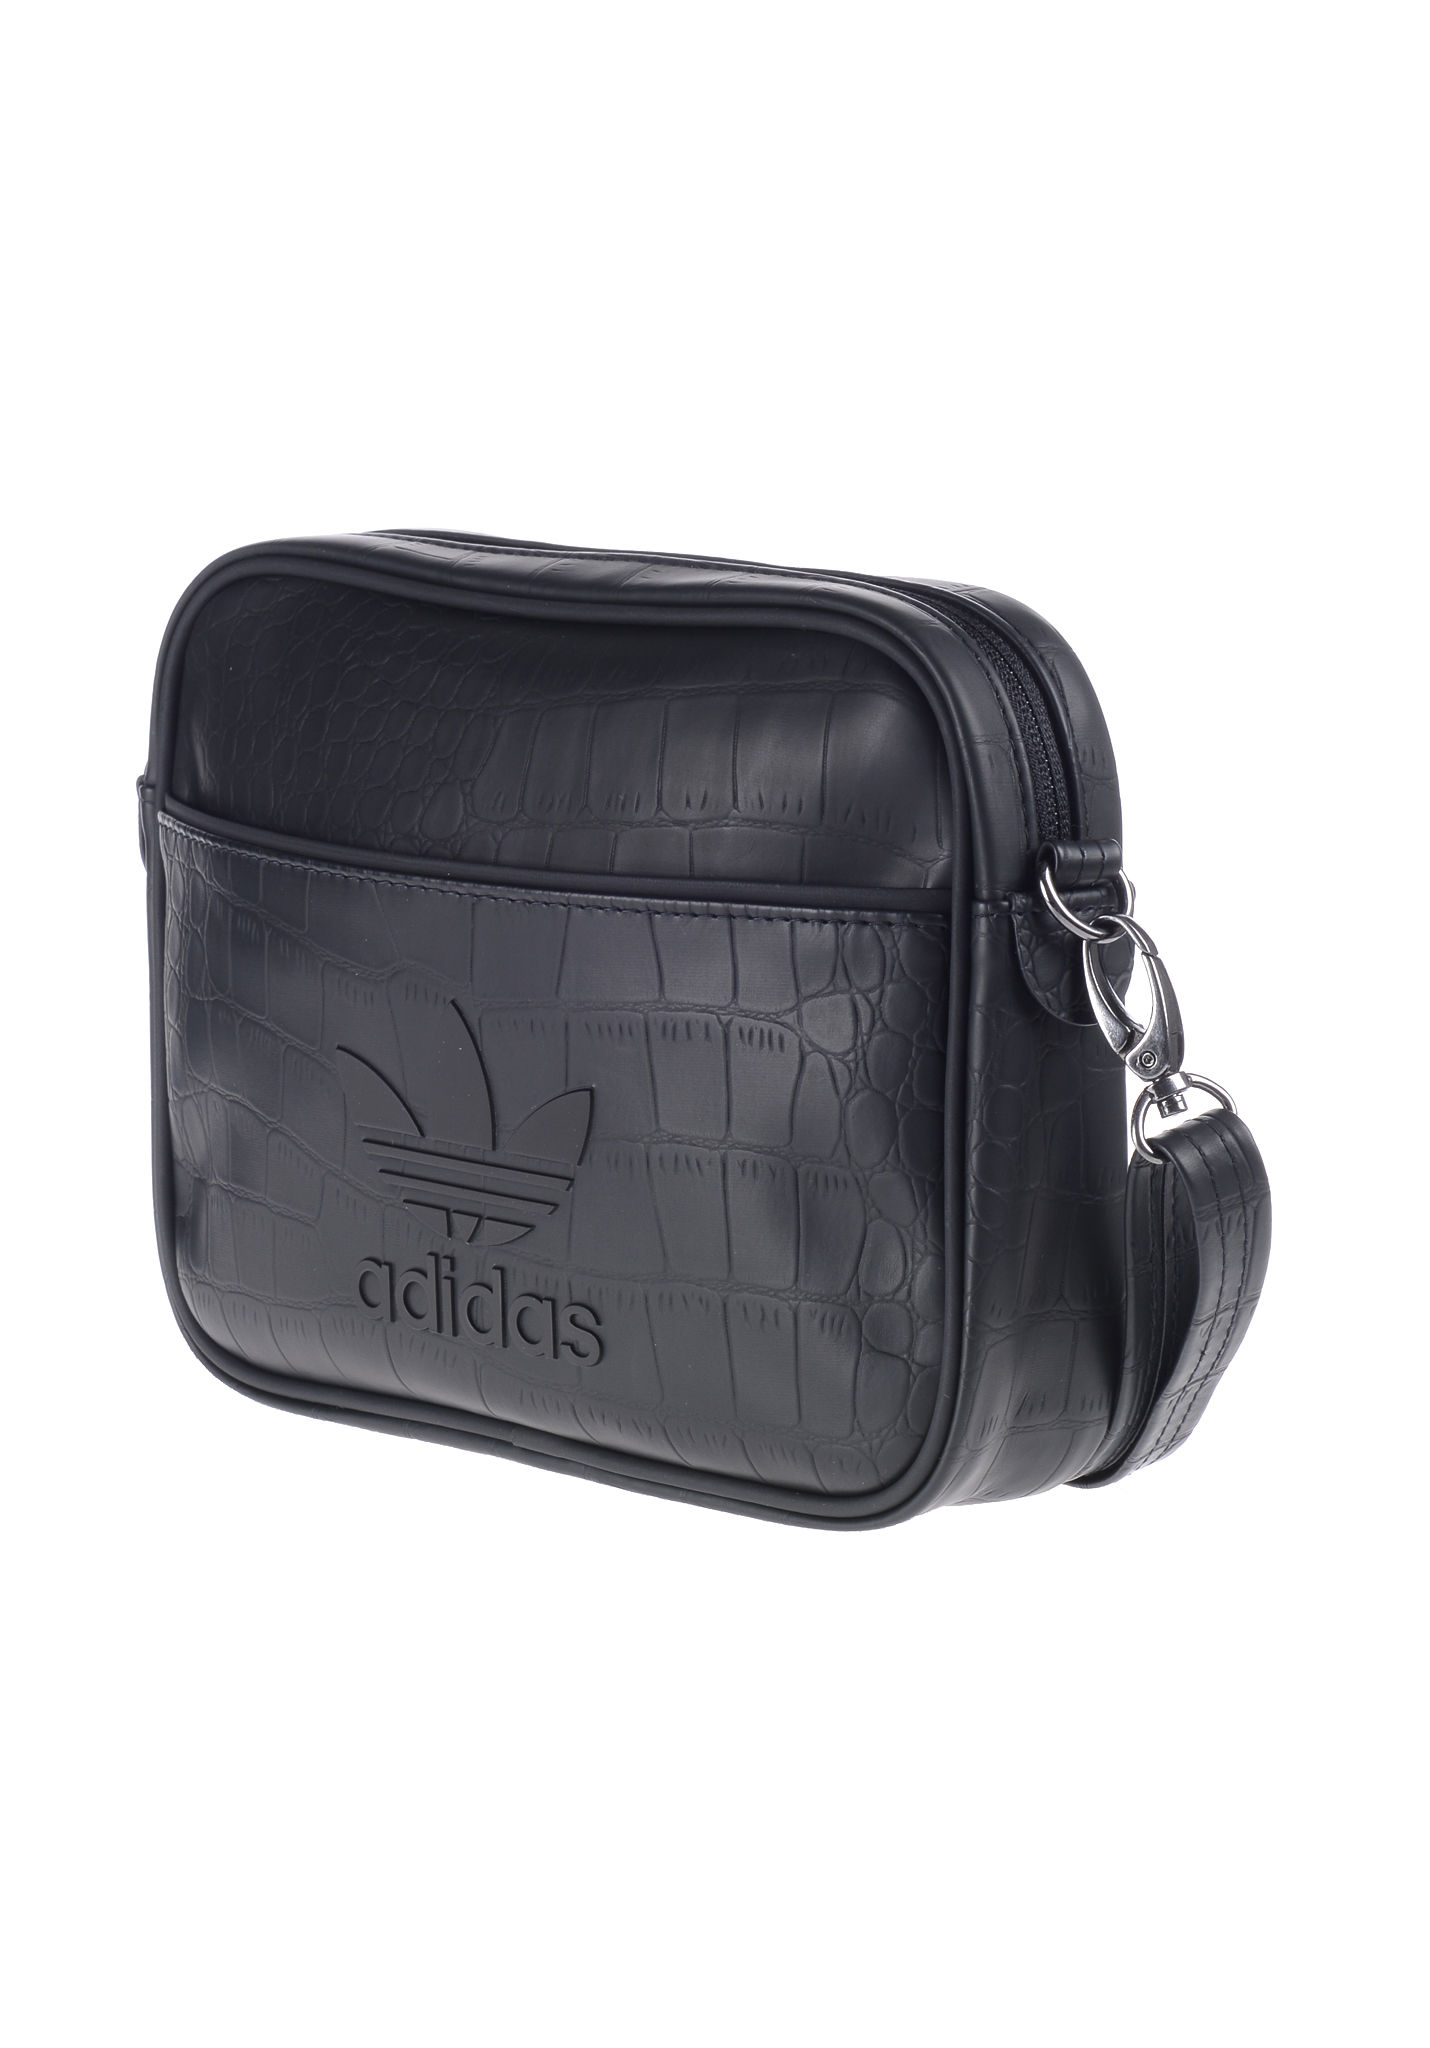 2460162d7d adidas airliner shoulder bag off 60% - www.espace-emeraude-dupont.com